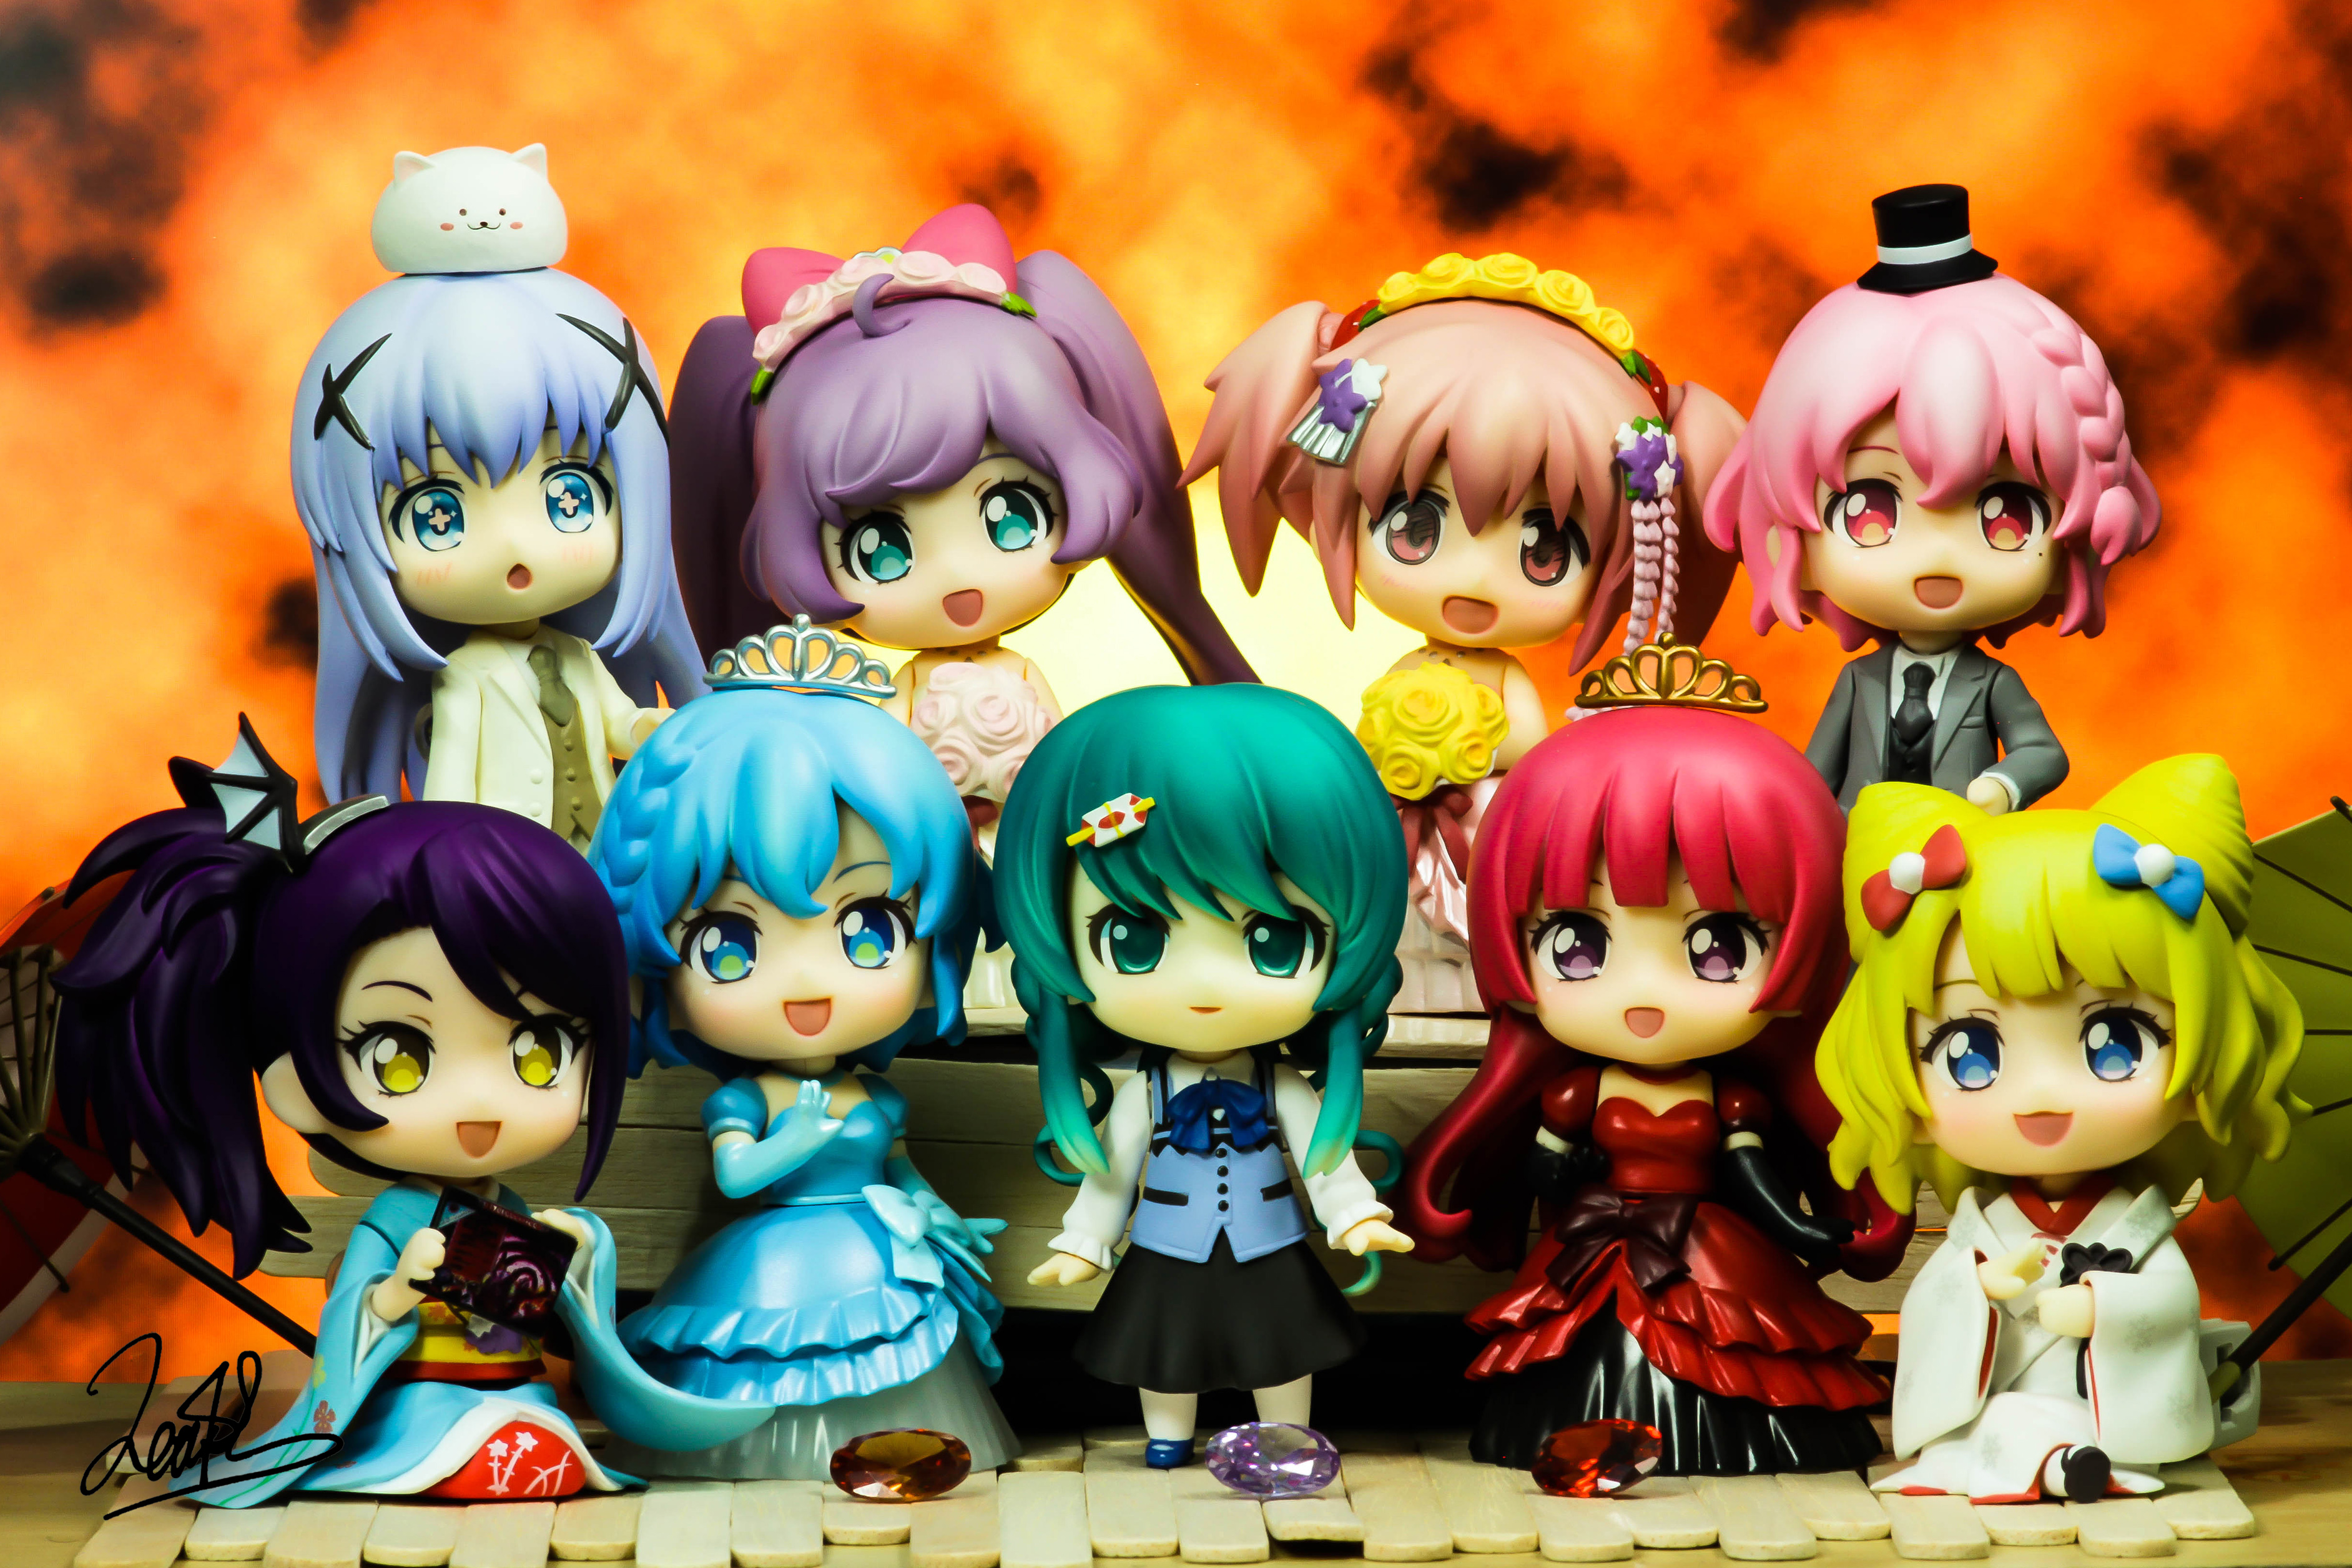 blond_hair vocaloid purple_eyes cyan_eyes nendoroid pink_hair red_hair blue_hair blue_eyes purple_hair hatsune_miku good_smile_company nendoron katou_gaku crypton_future_media mahou_shoujo_madoka★magica kaname_madoka takara_tomy_a.r.t.s aniplex kiking shaft koi tippy shichibee nendoroid_more iguchi_shinya sasaki_kai kirukiru nd_dog gochuumon_wa_usagi_desu_ka? kafuu_chino imai_yuuichi syn_sophia pripara manaka_lala minami_mirei houjou_sophie leona_west toudou_shion dorothy_west taketomo nendoroid_more:_kisekae_wedding nendoroid_co-de nishibu_hidetoshi